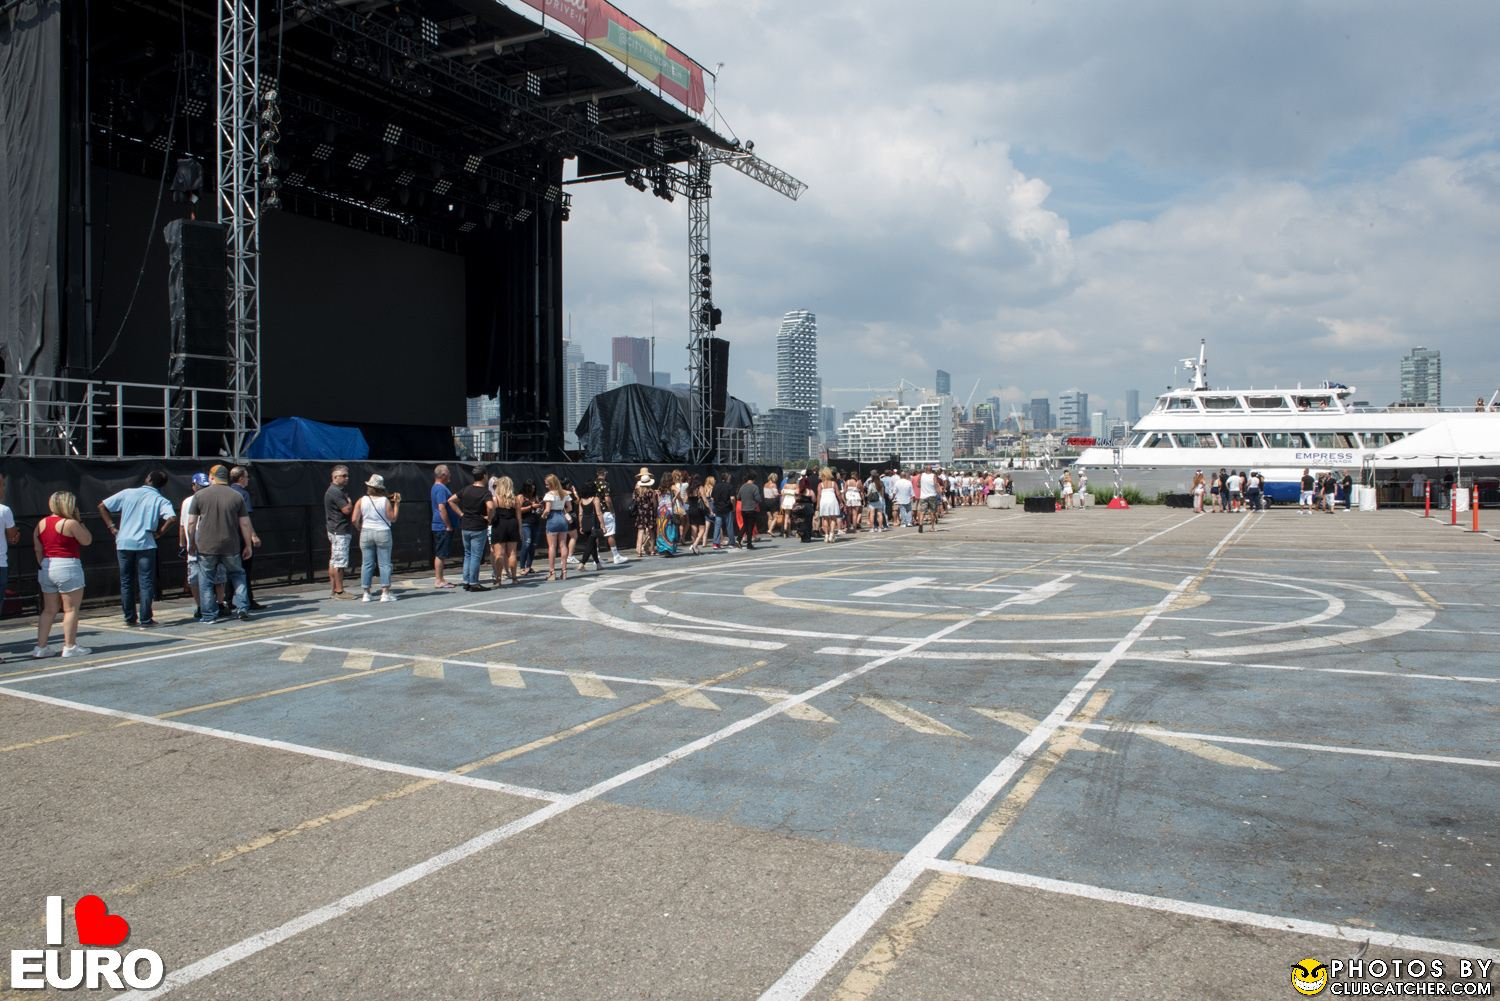 Empress Of Canada party venue photo 43 - August 22nd, 2021